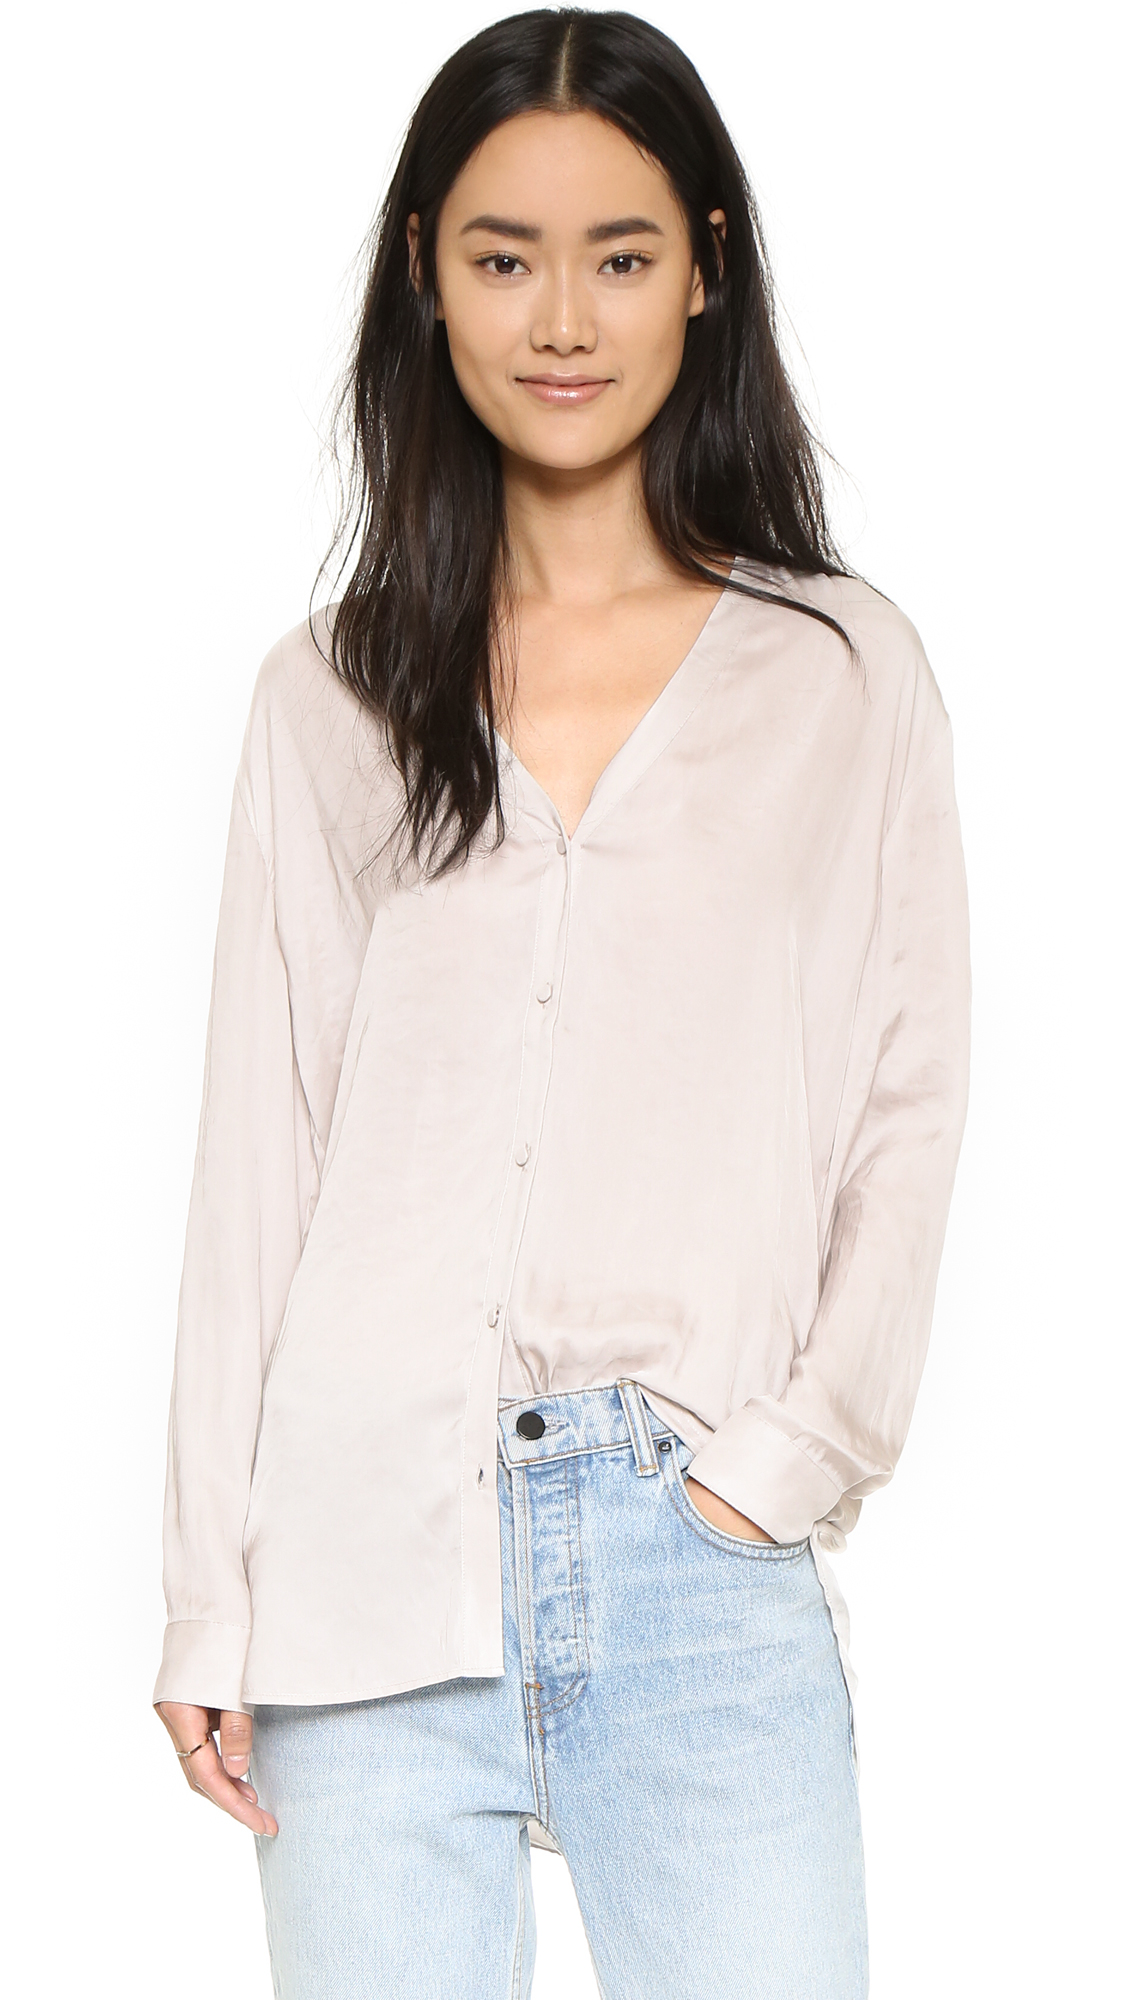 Atm shawl collar shirt in white lyst for Shawl collar t shirt